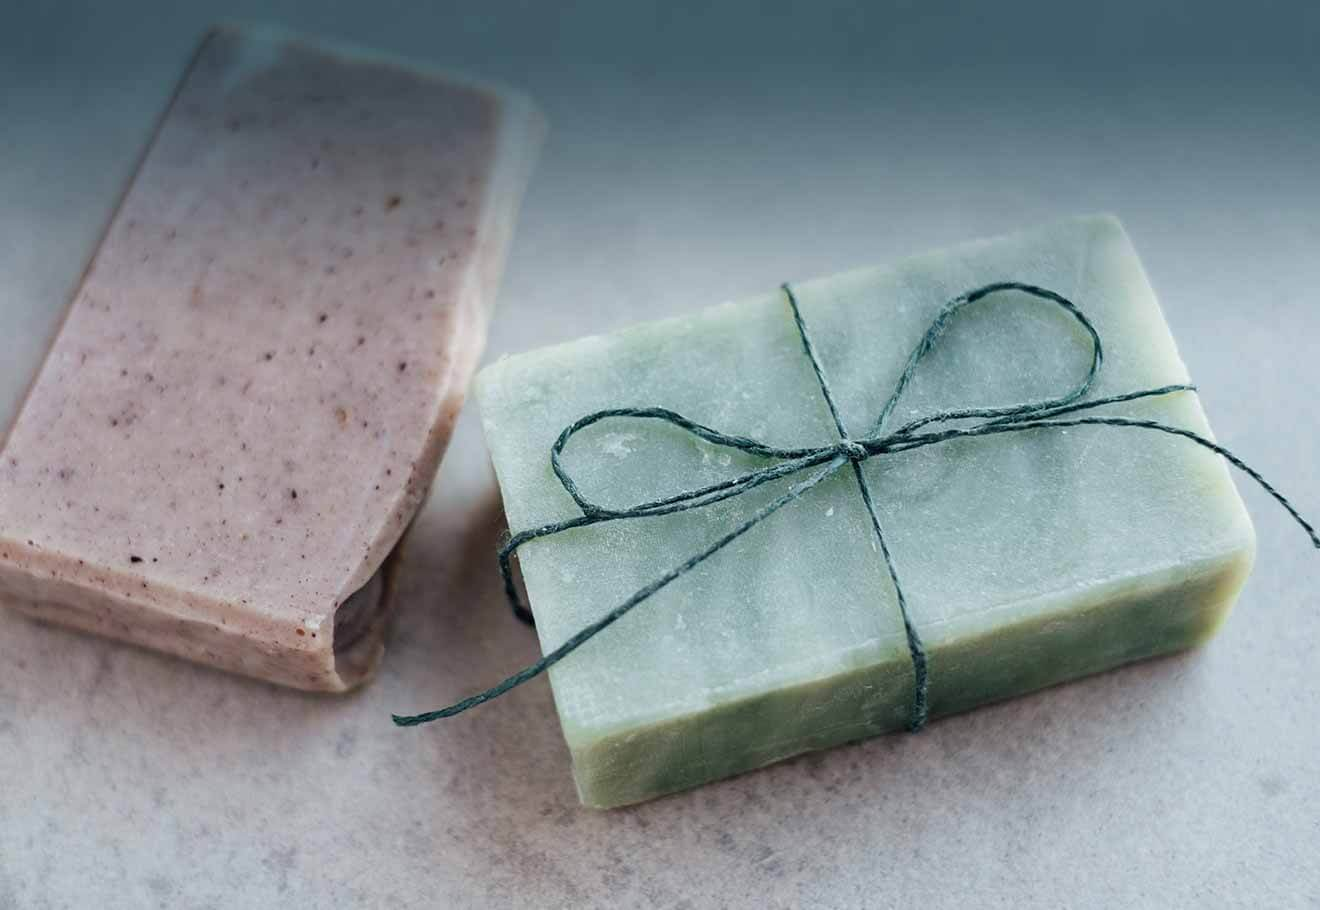 Packaging-free soap